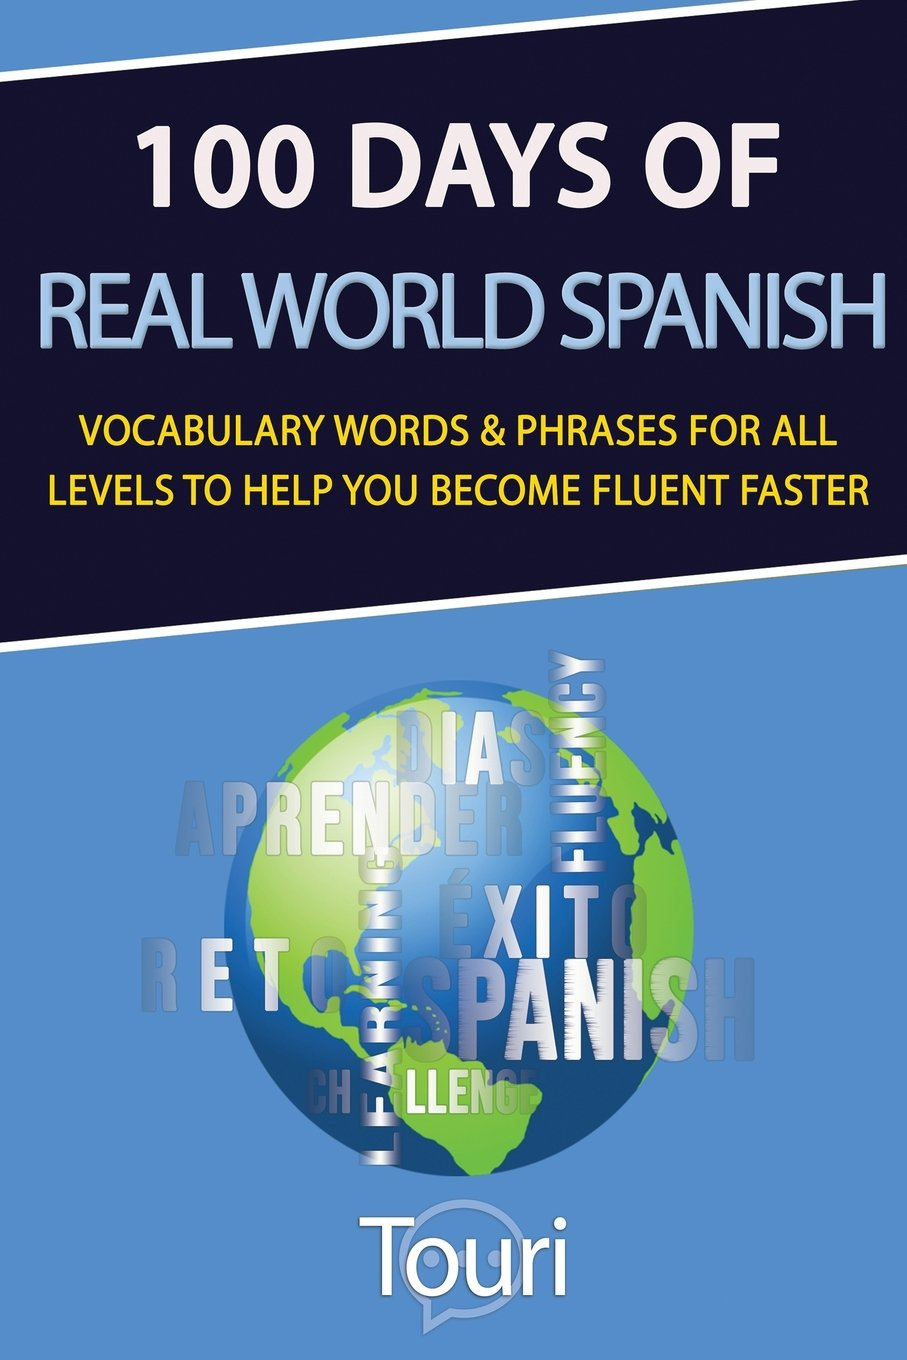 100 Days of Real World Spanish: Vocabulary Words & Phrases for All Levels to Help You Become Fluent Faster (Spanish Learning) (Volume 1) PDF